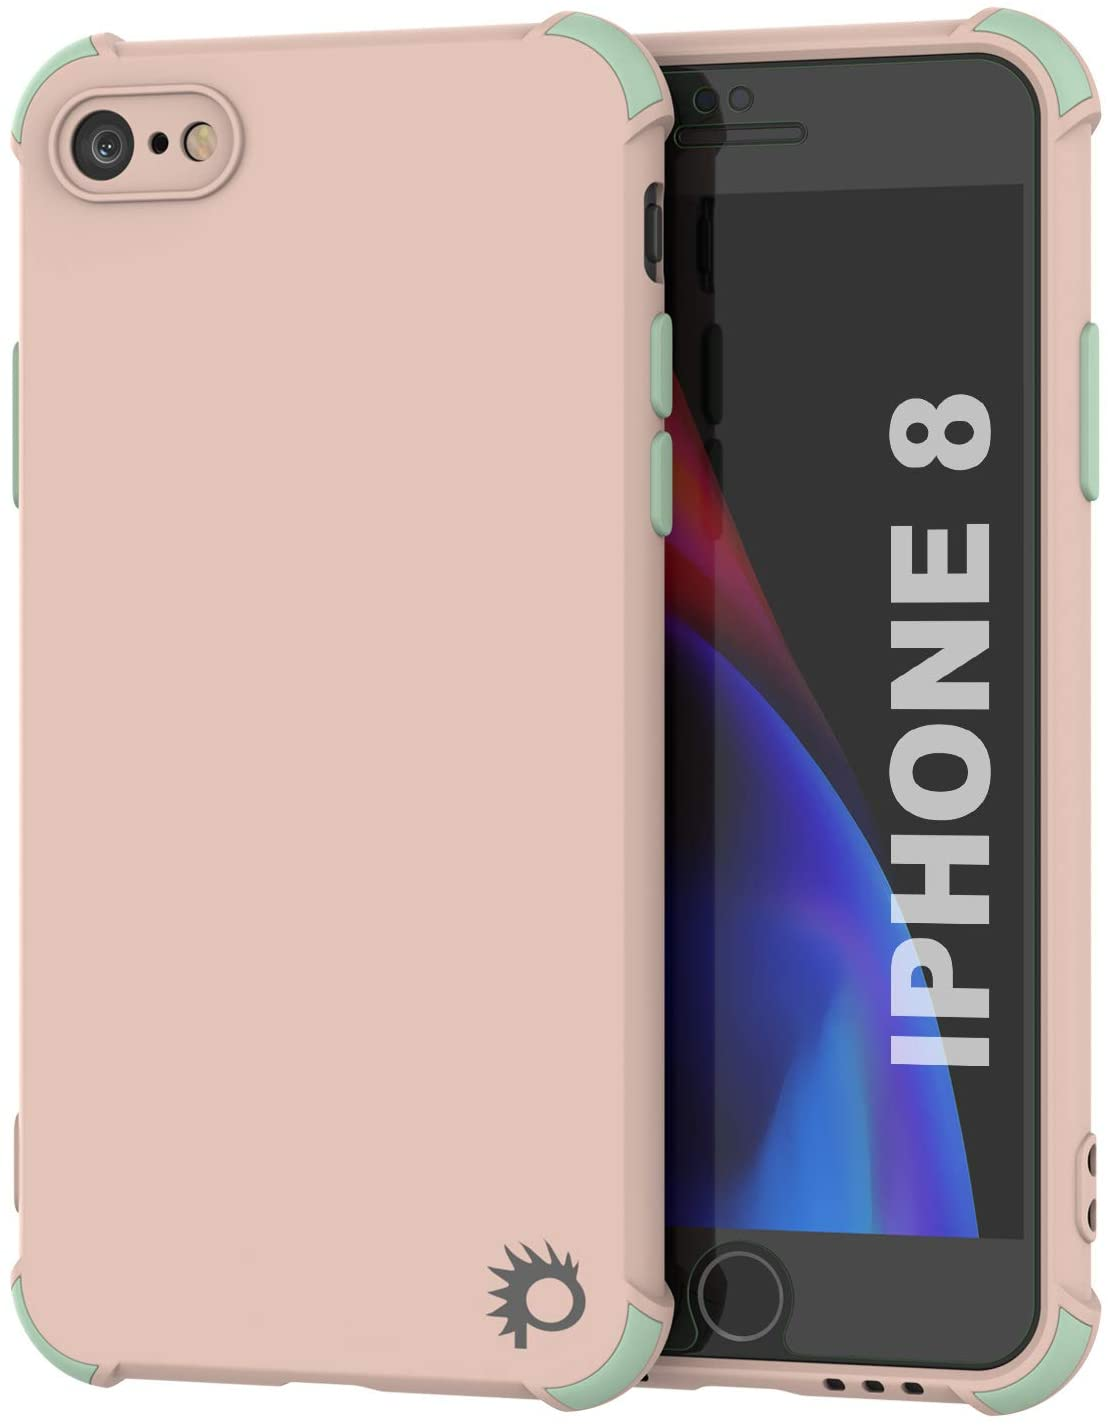 Punkcase Protective & Lightweight TPU Case [Sunshine Series] for iPhone 8 [Pink]